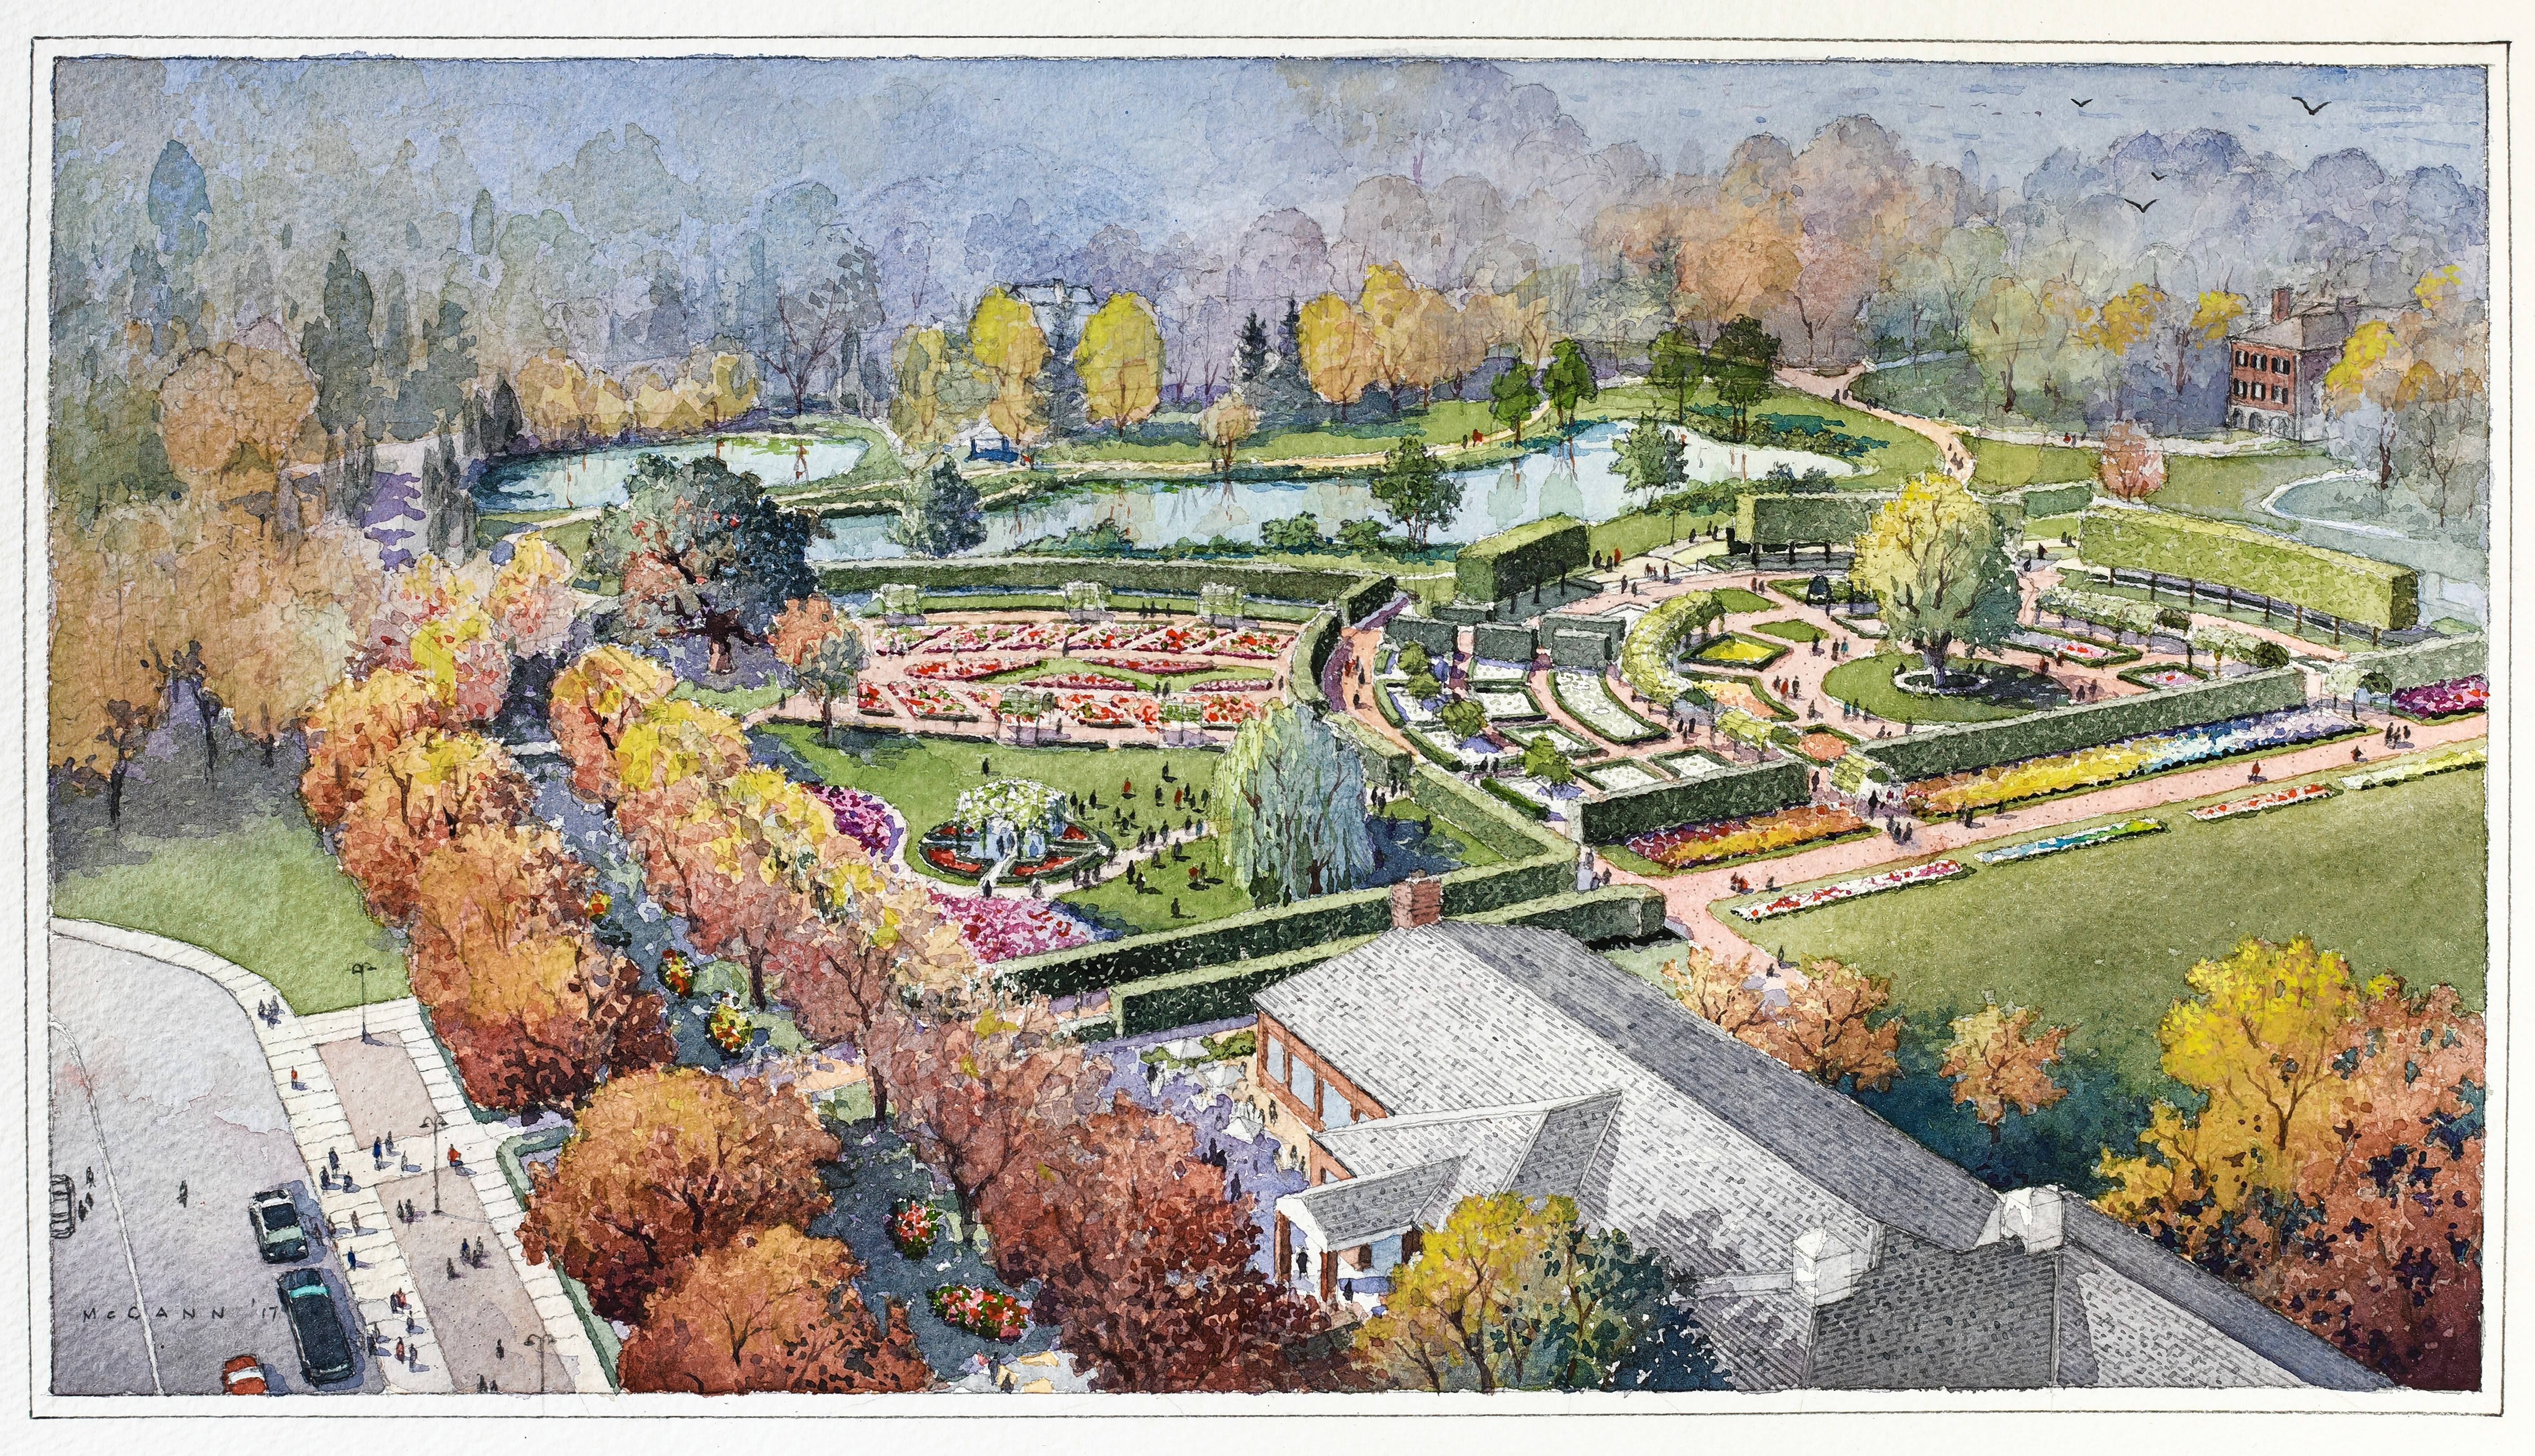 $25 million project to revamp Cantigny gardens, museums